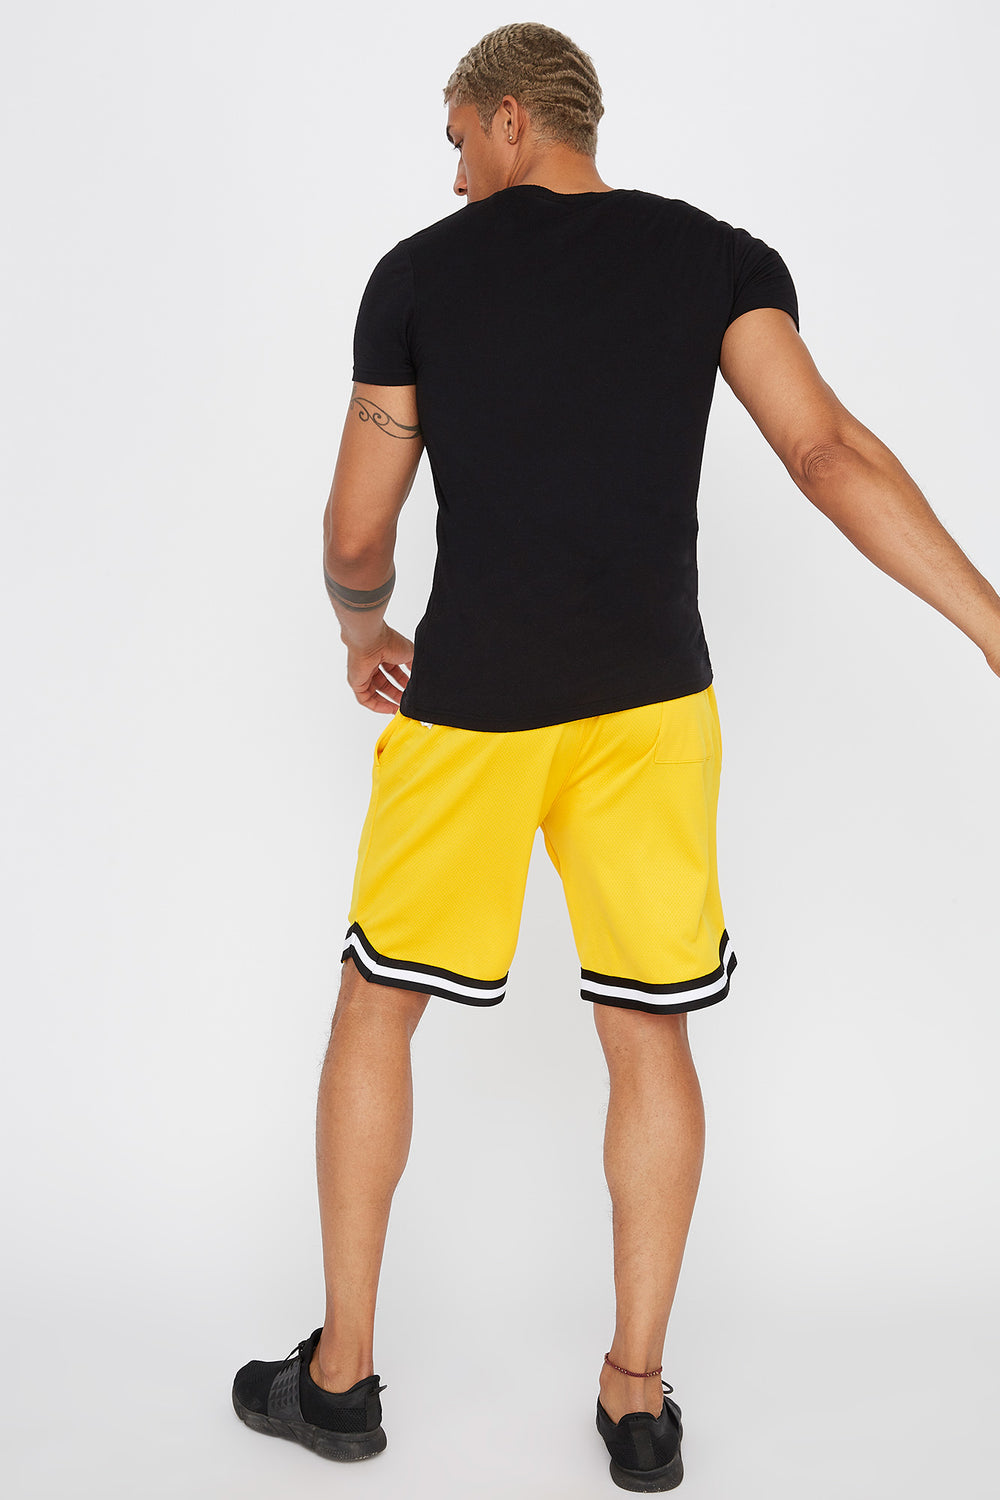 Rocawear Basketball Short Yellow